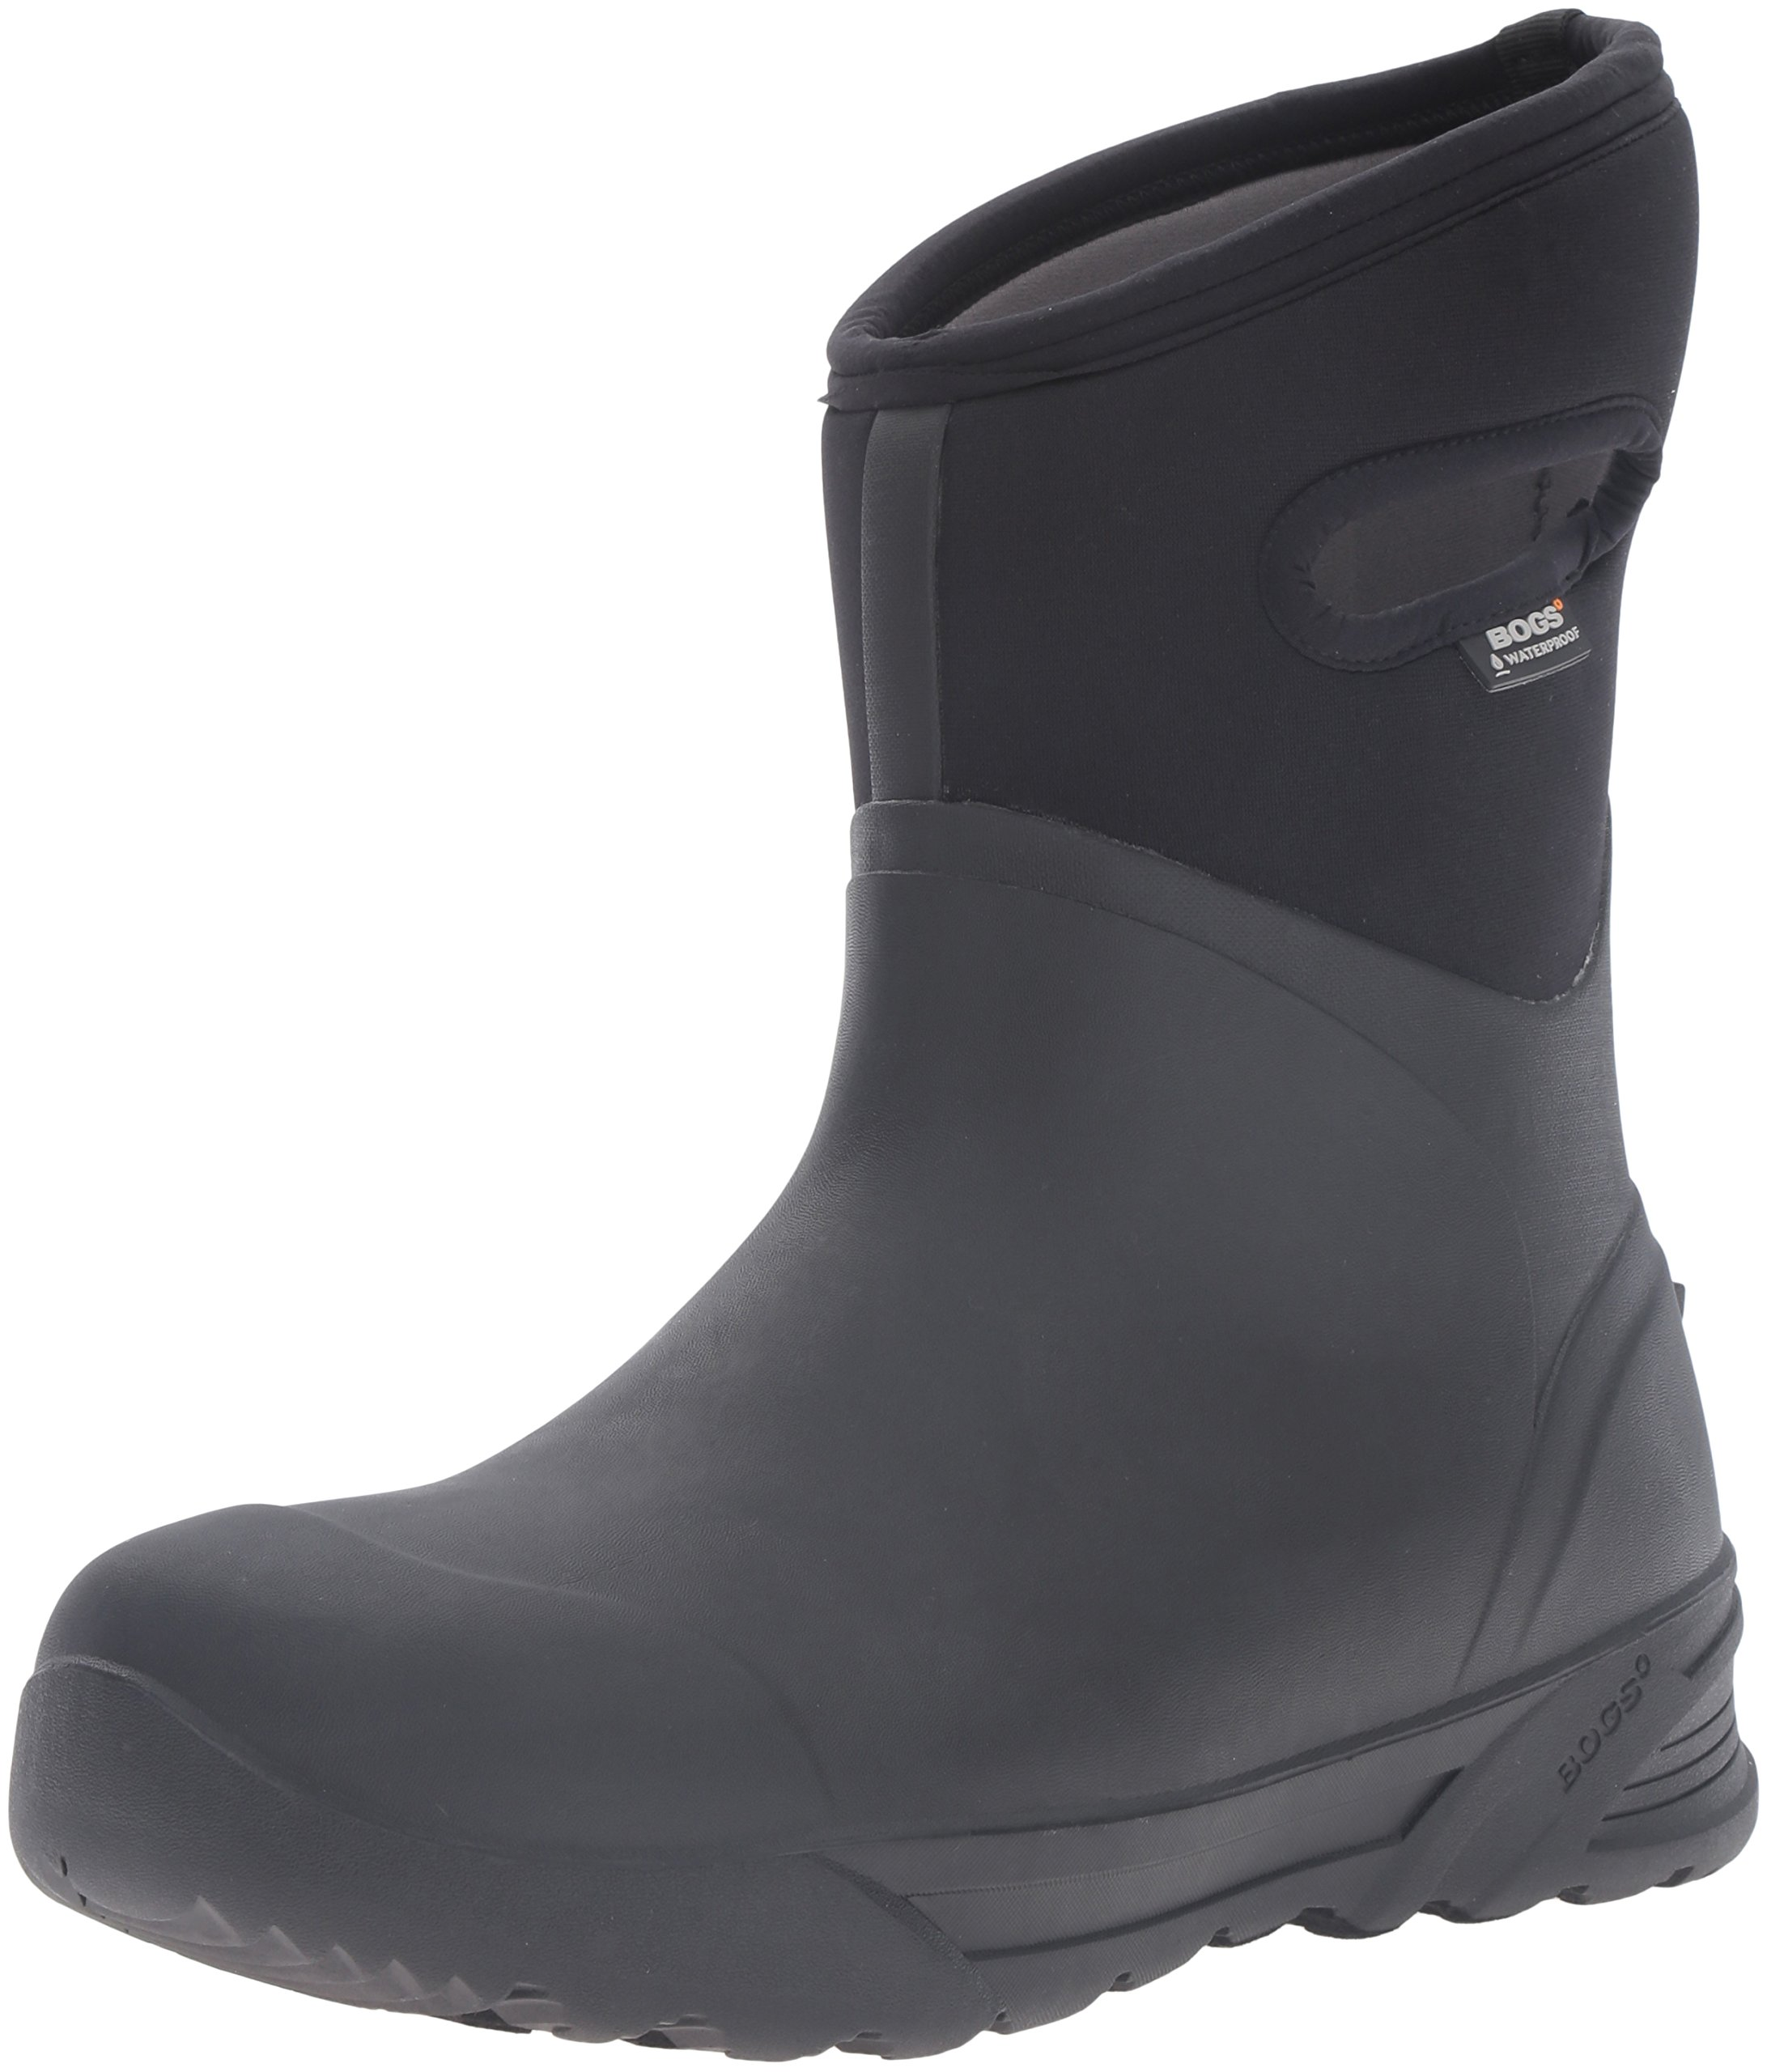 Bogs Men's Bozeman Mid Waterproof Insulated Rain Boot, Black, 11 D(M) US by BOGS